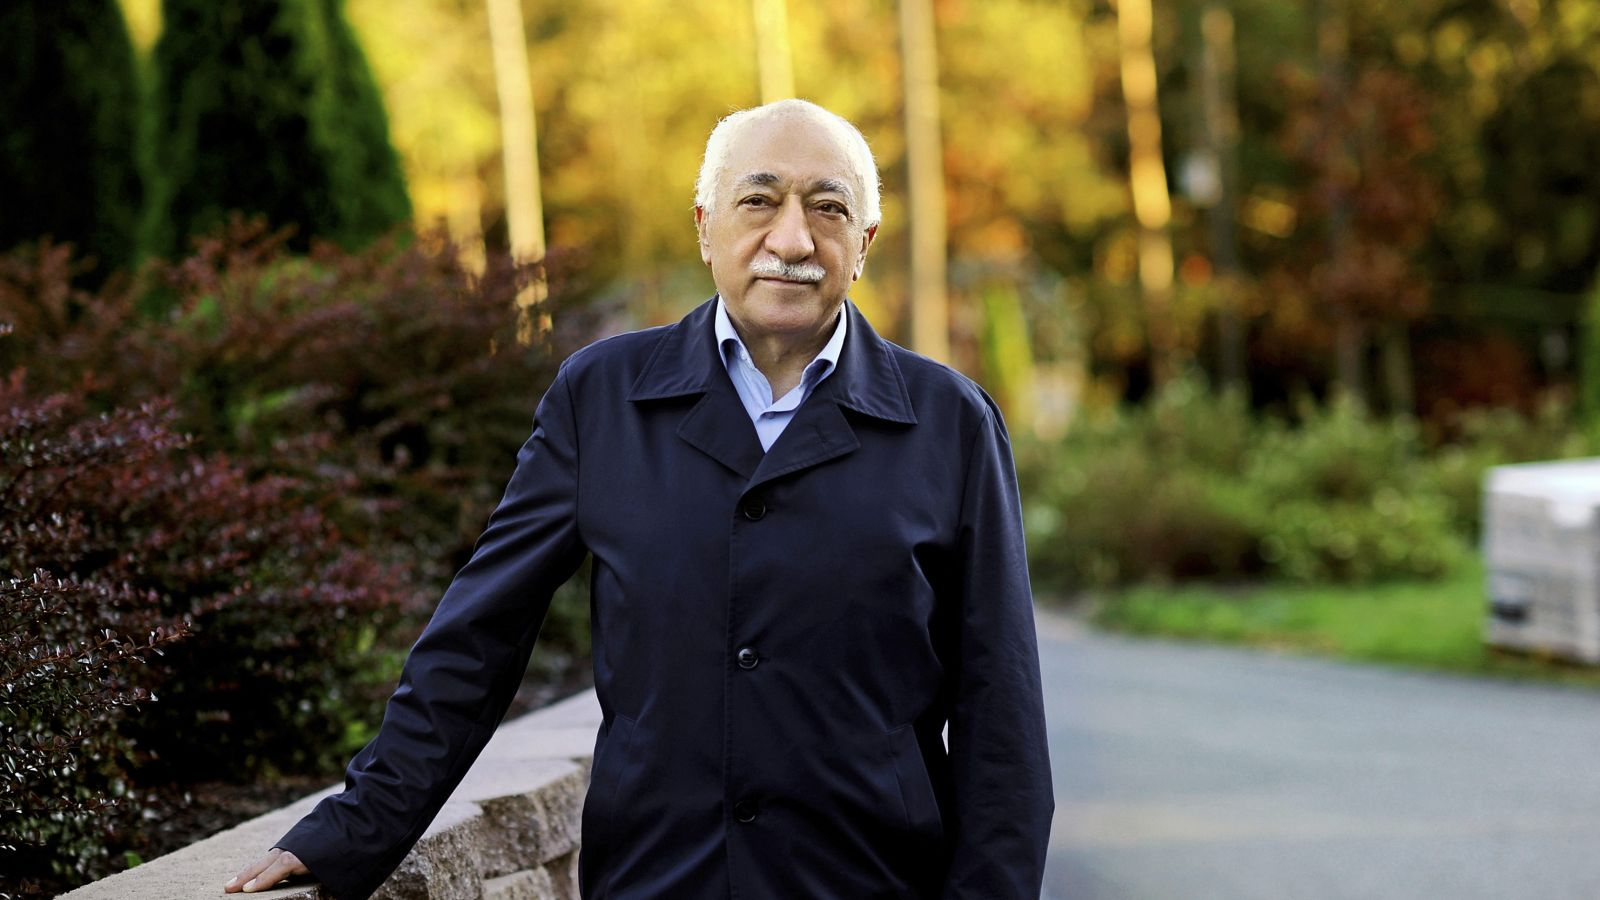 Fethullah Gulen: I Condemn All Threats to Turkey's Democracy